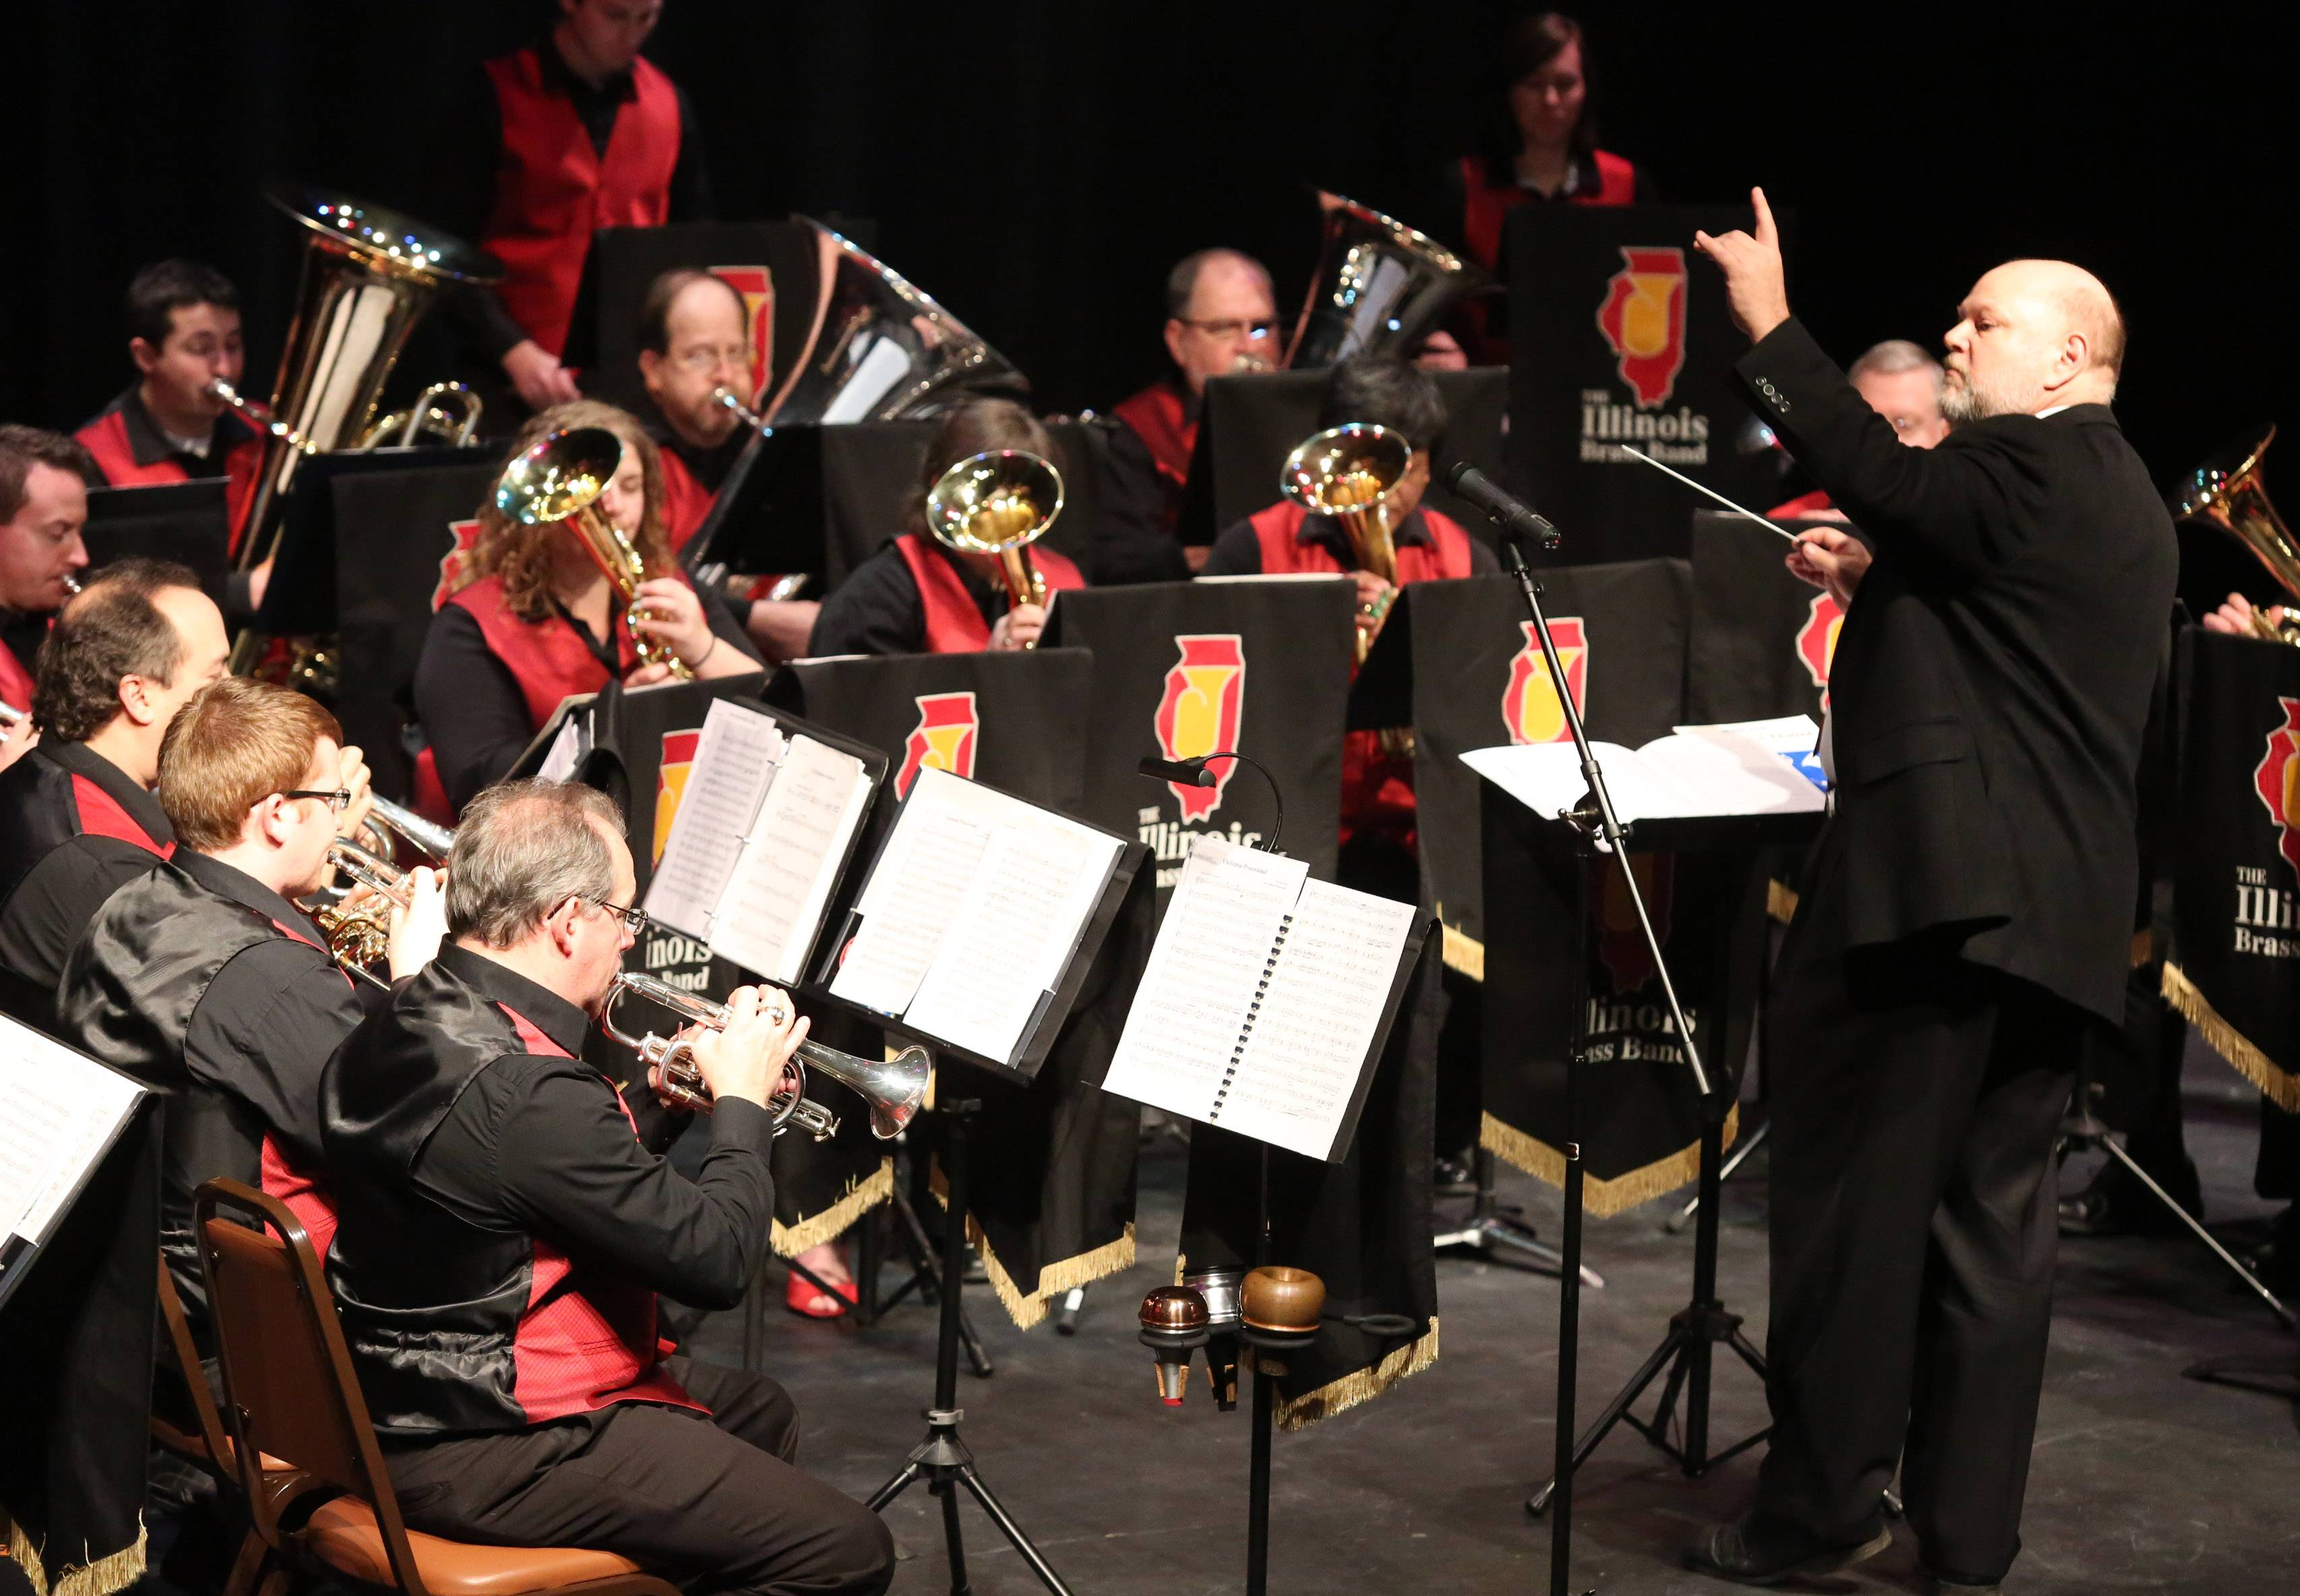 The Illinois Brass Band, directed by Stephen Squires, who also conducts the Elgin Symphony Orchestra, will perform in St. Charles on Saturday.